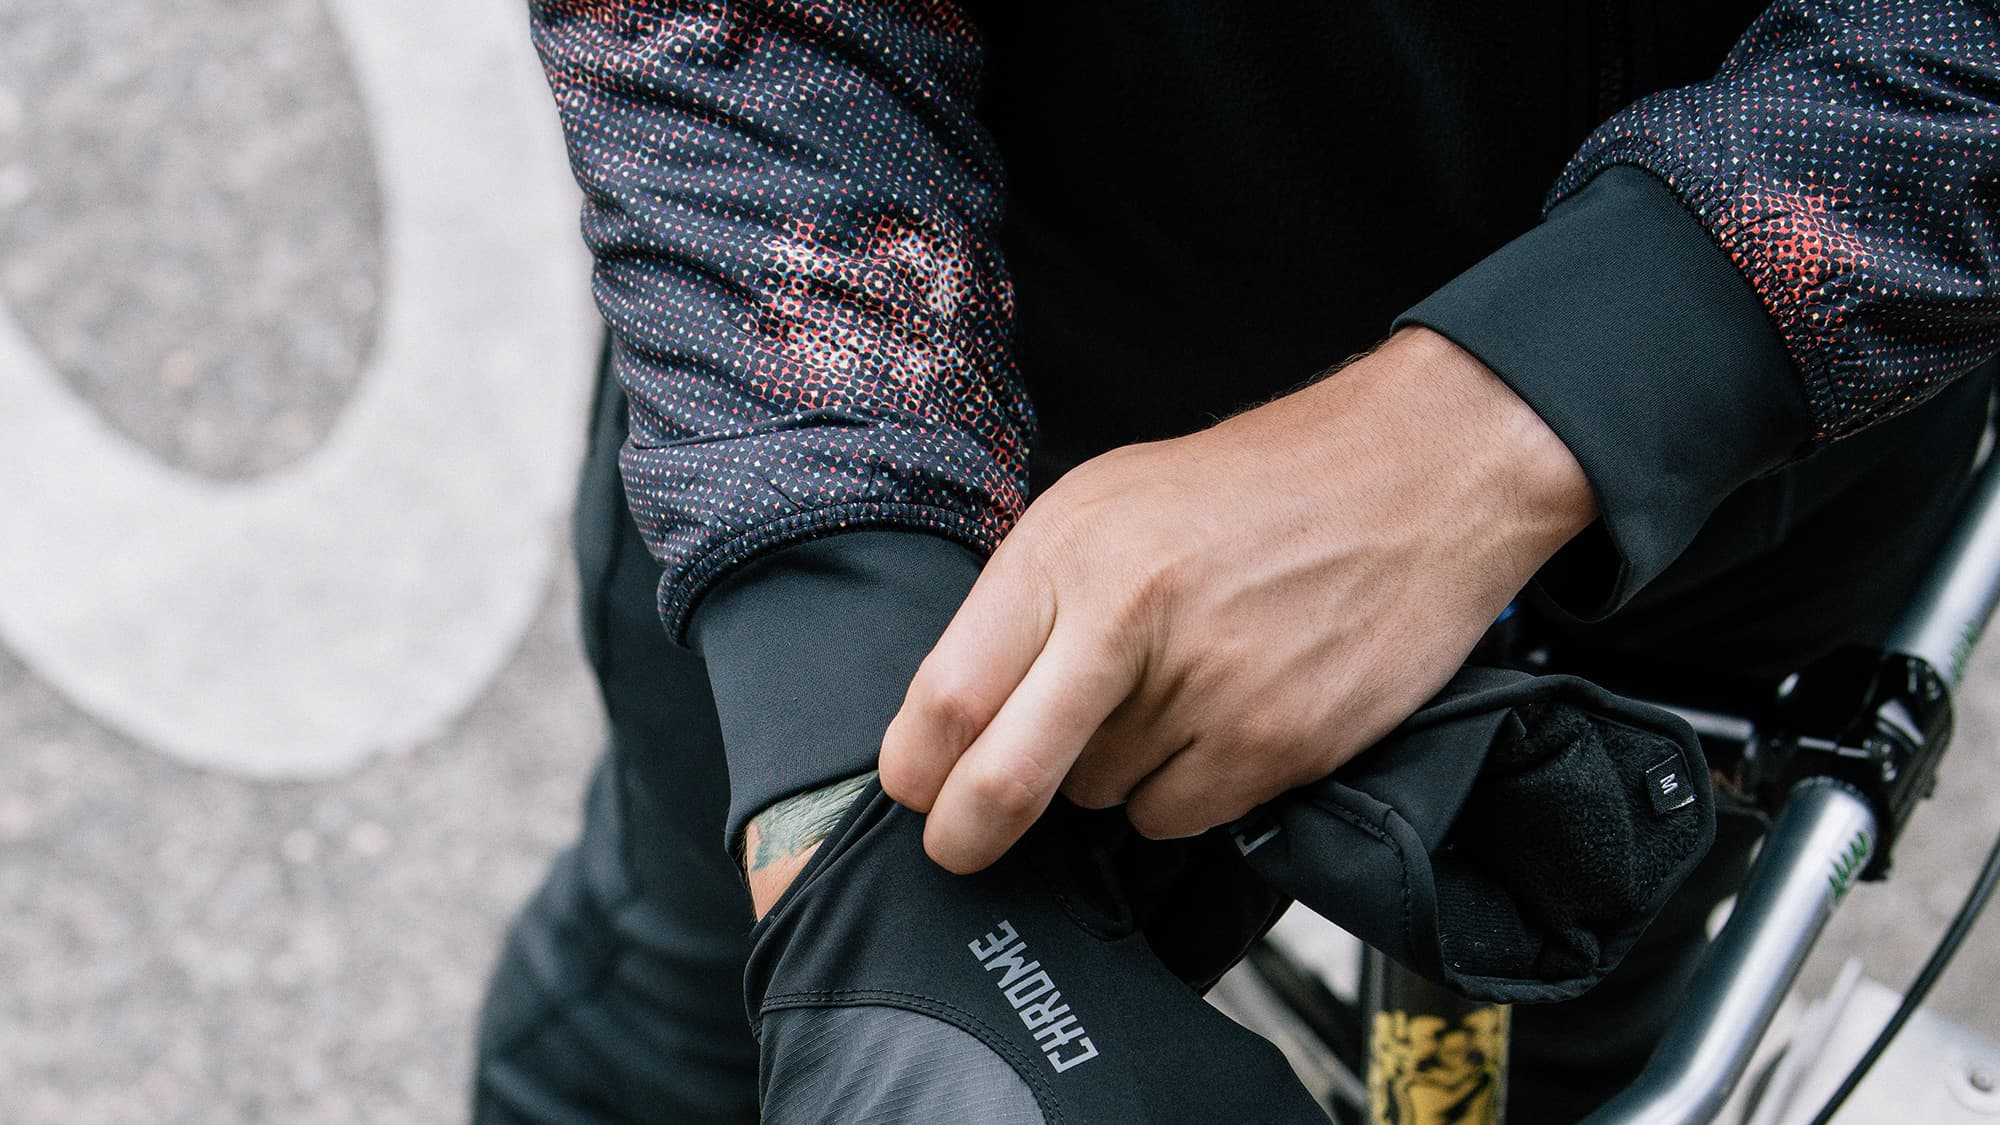 putting on cycling gloves